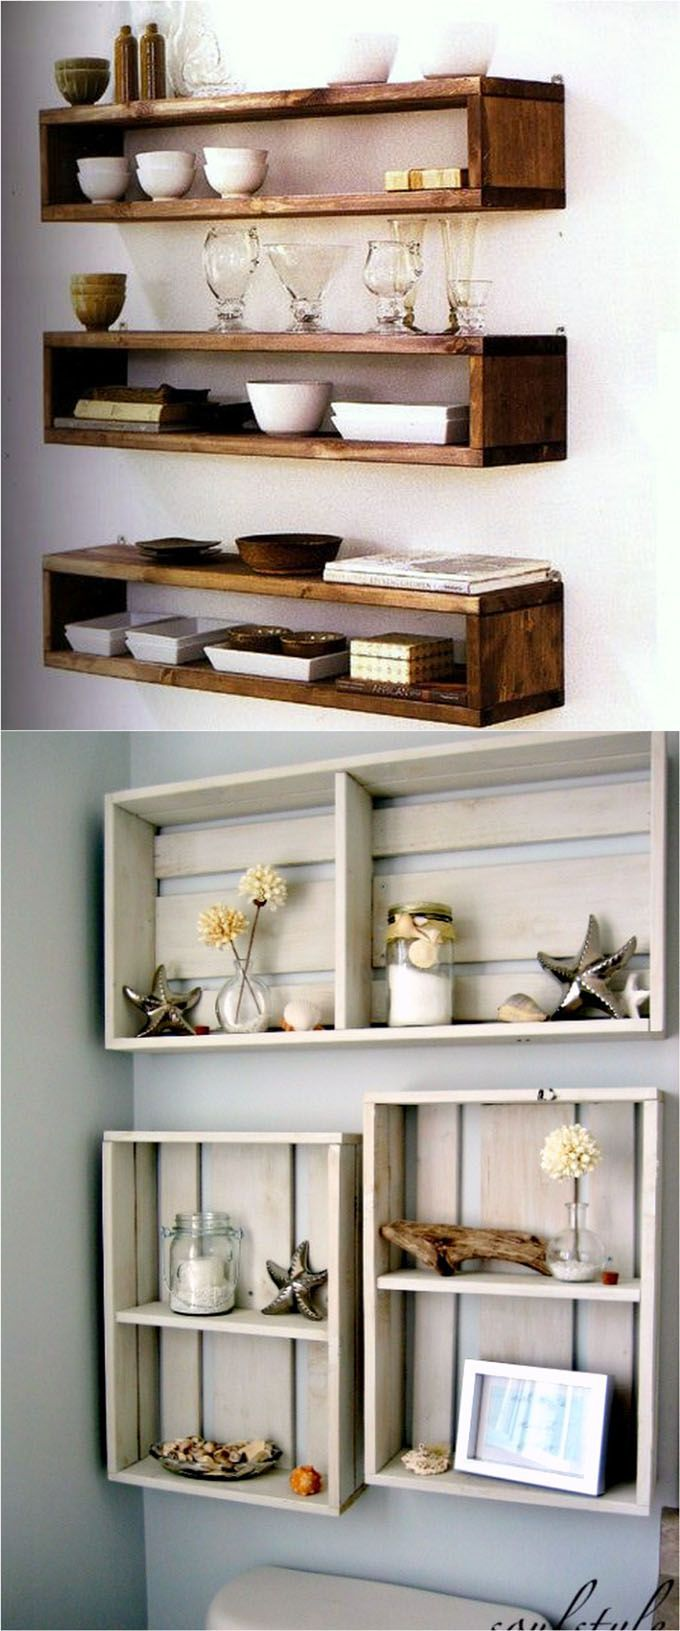 Design Wood Shelves For Walls 16 easy and stylish diy floating shelves wall design shelves